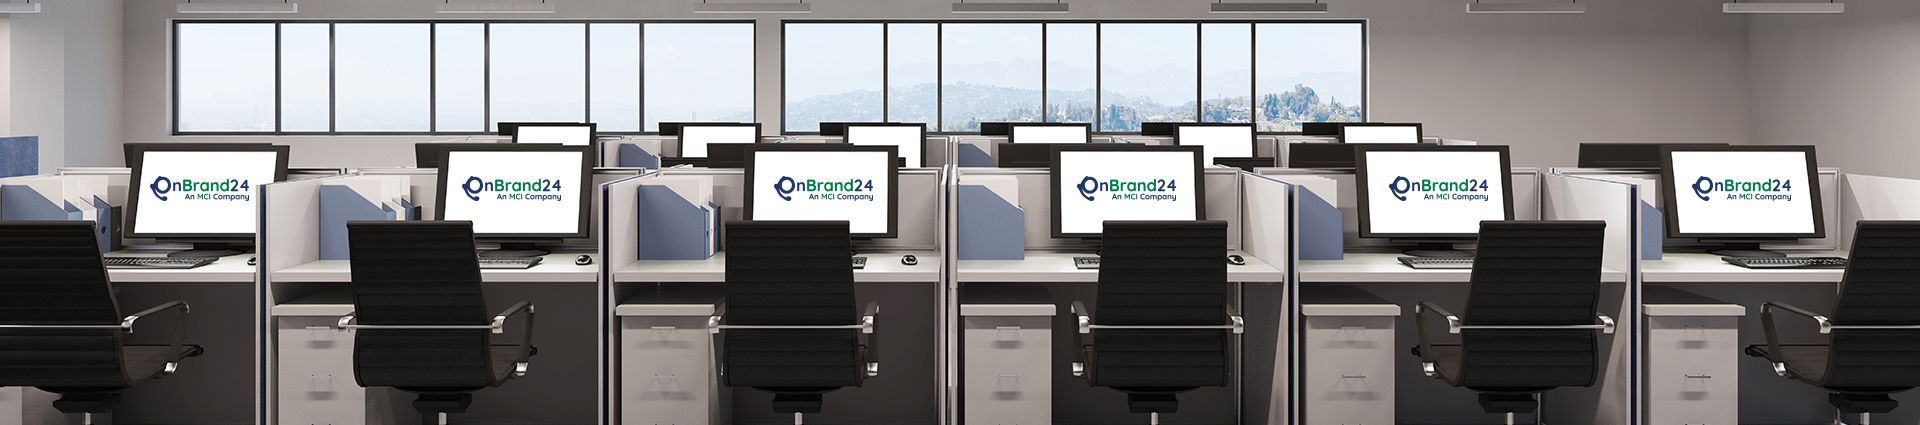 OnBrand24 Outbound Inbound Call Center Service Provider